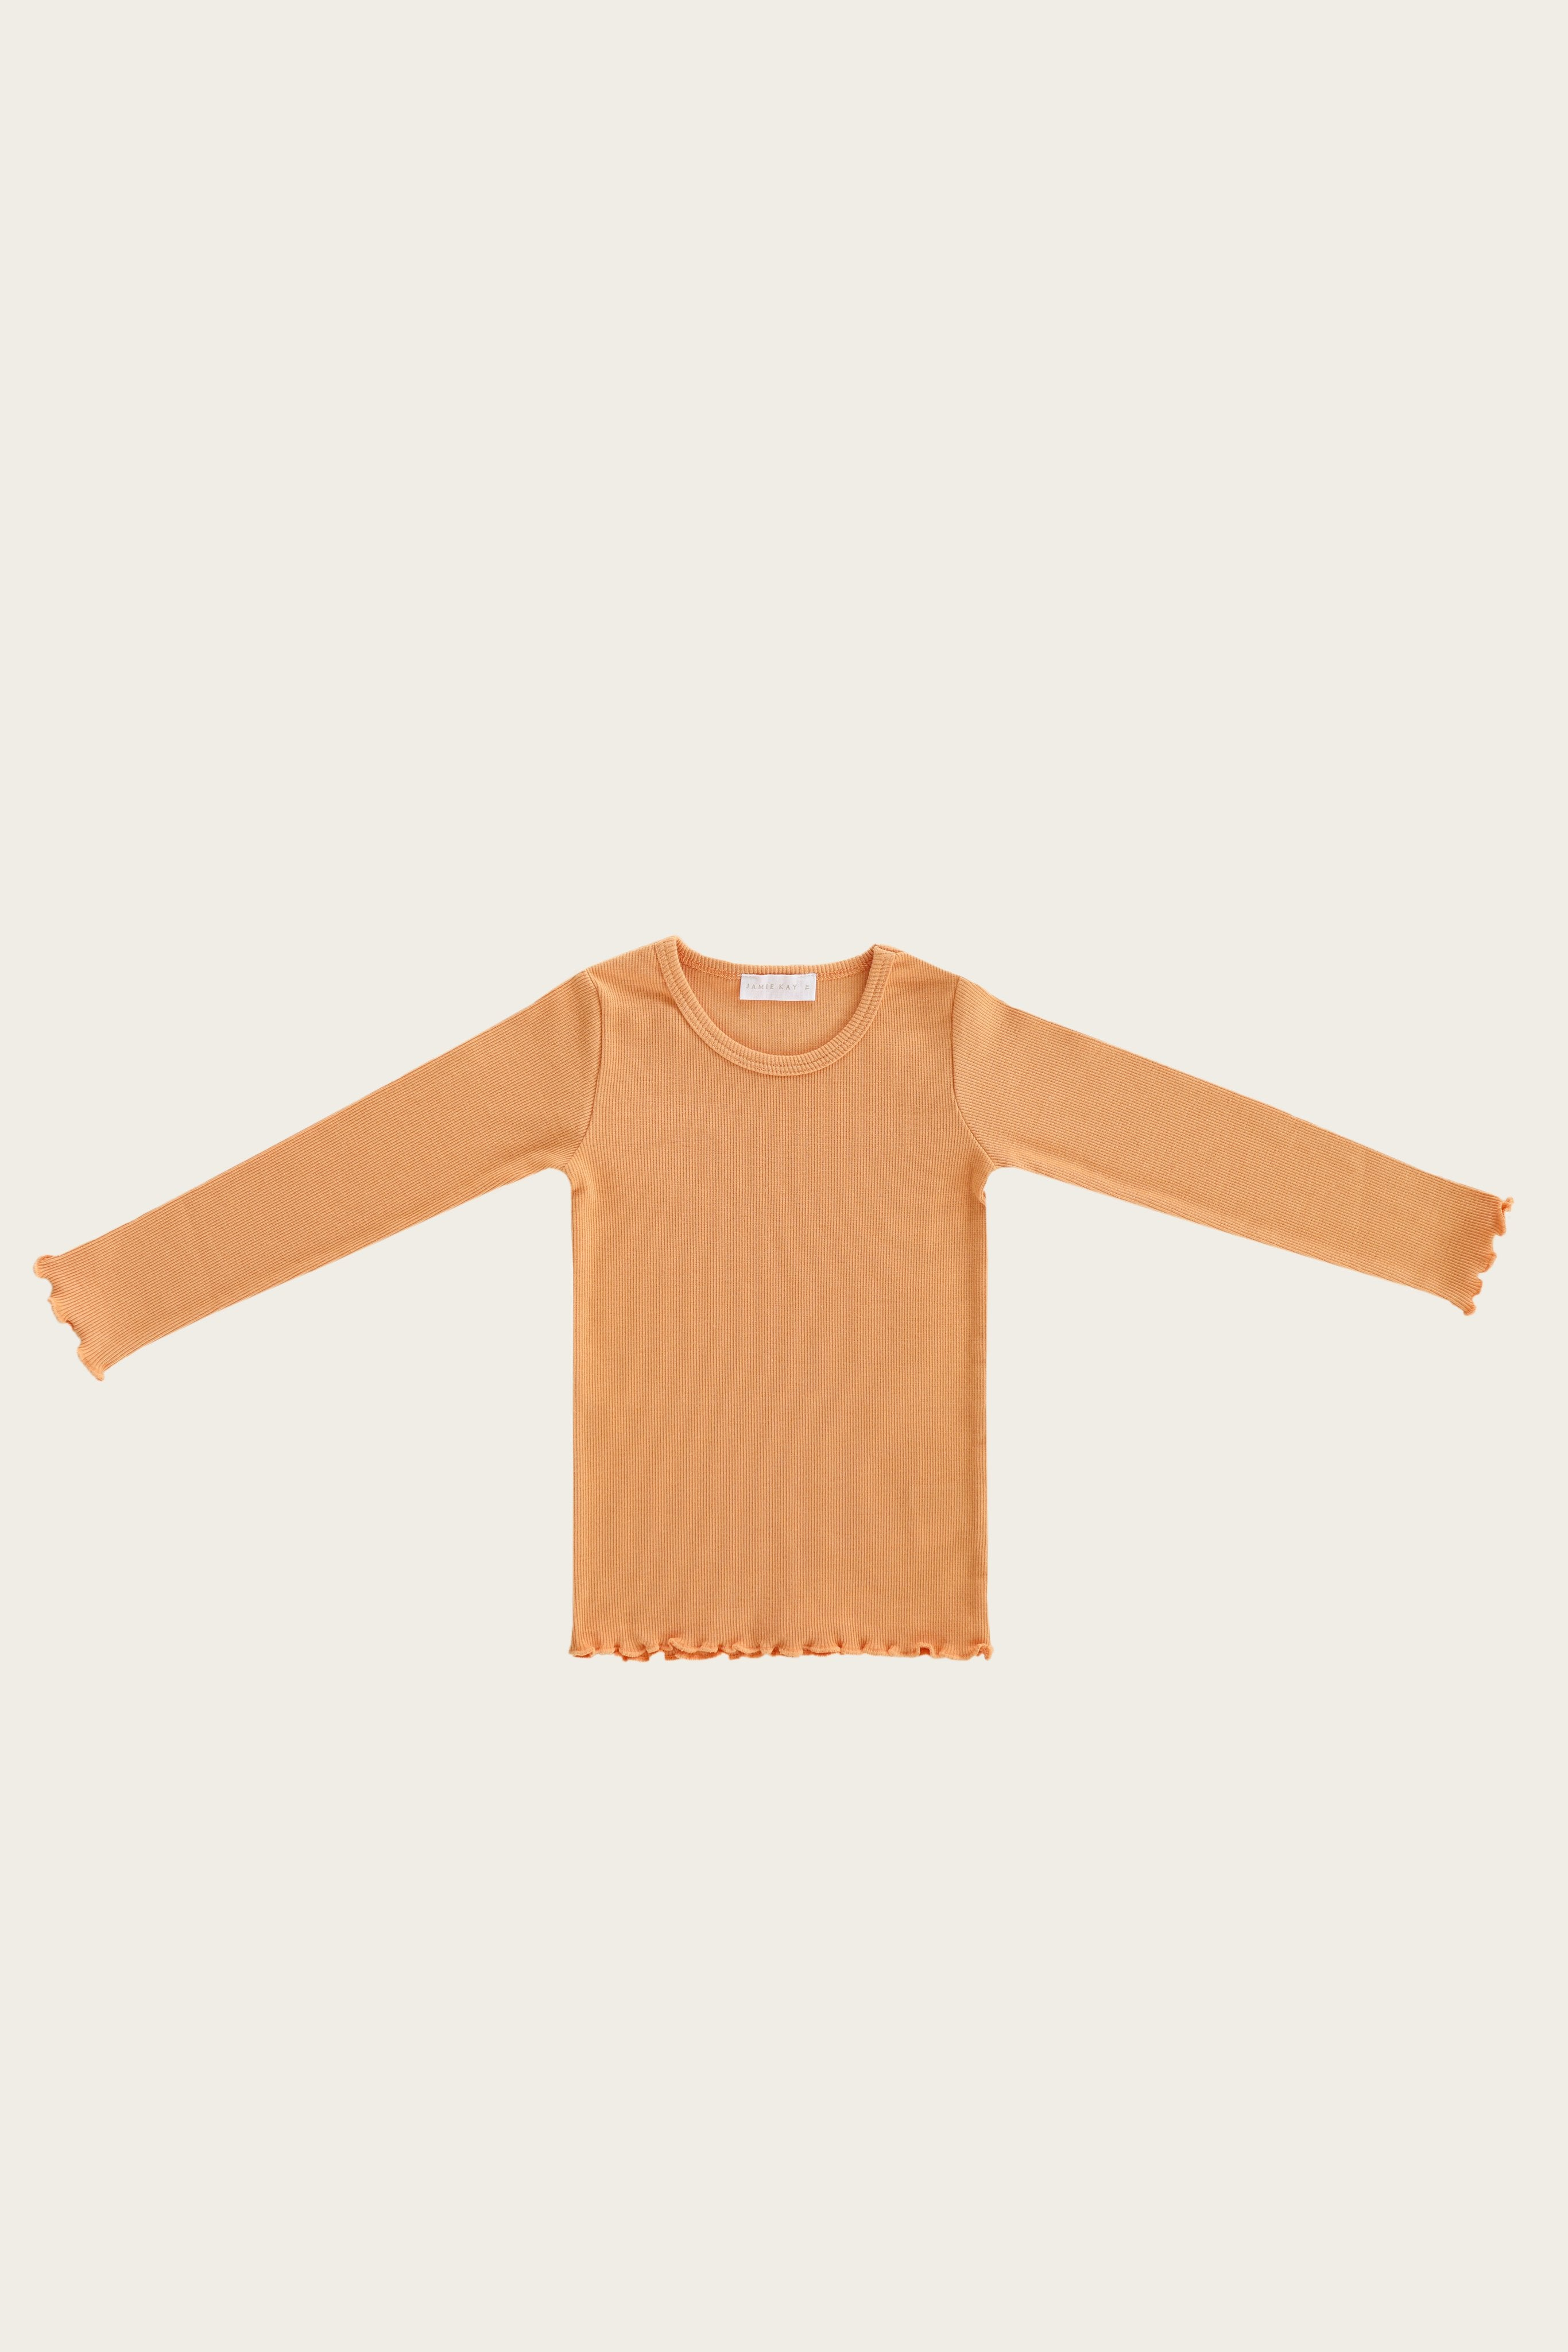 Organic Cotton Maddison Top - Apricot